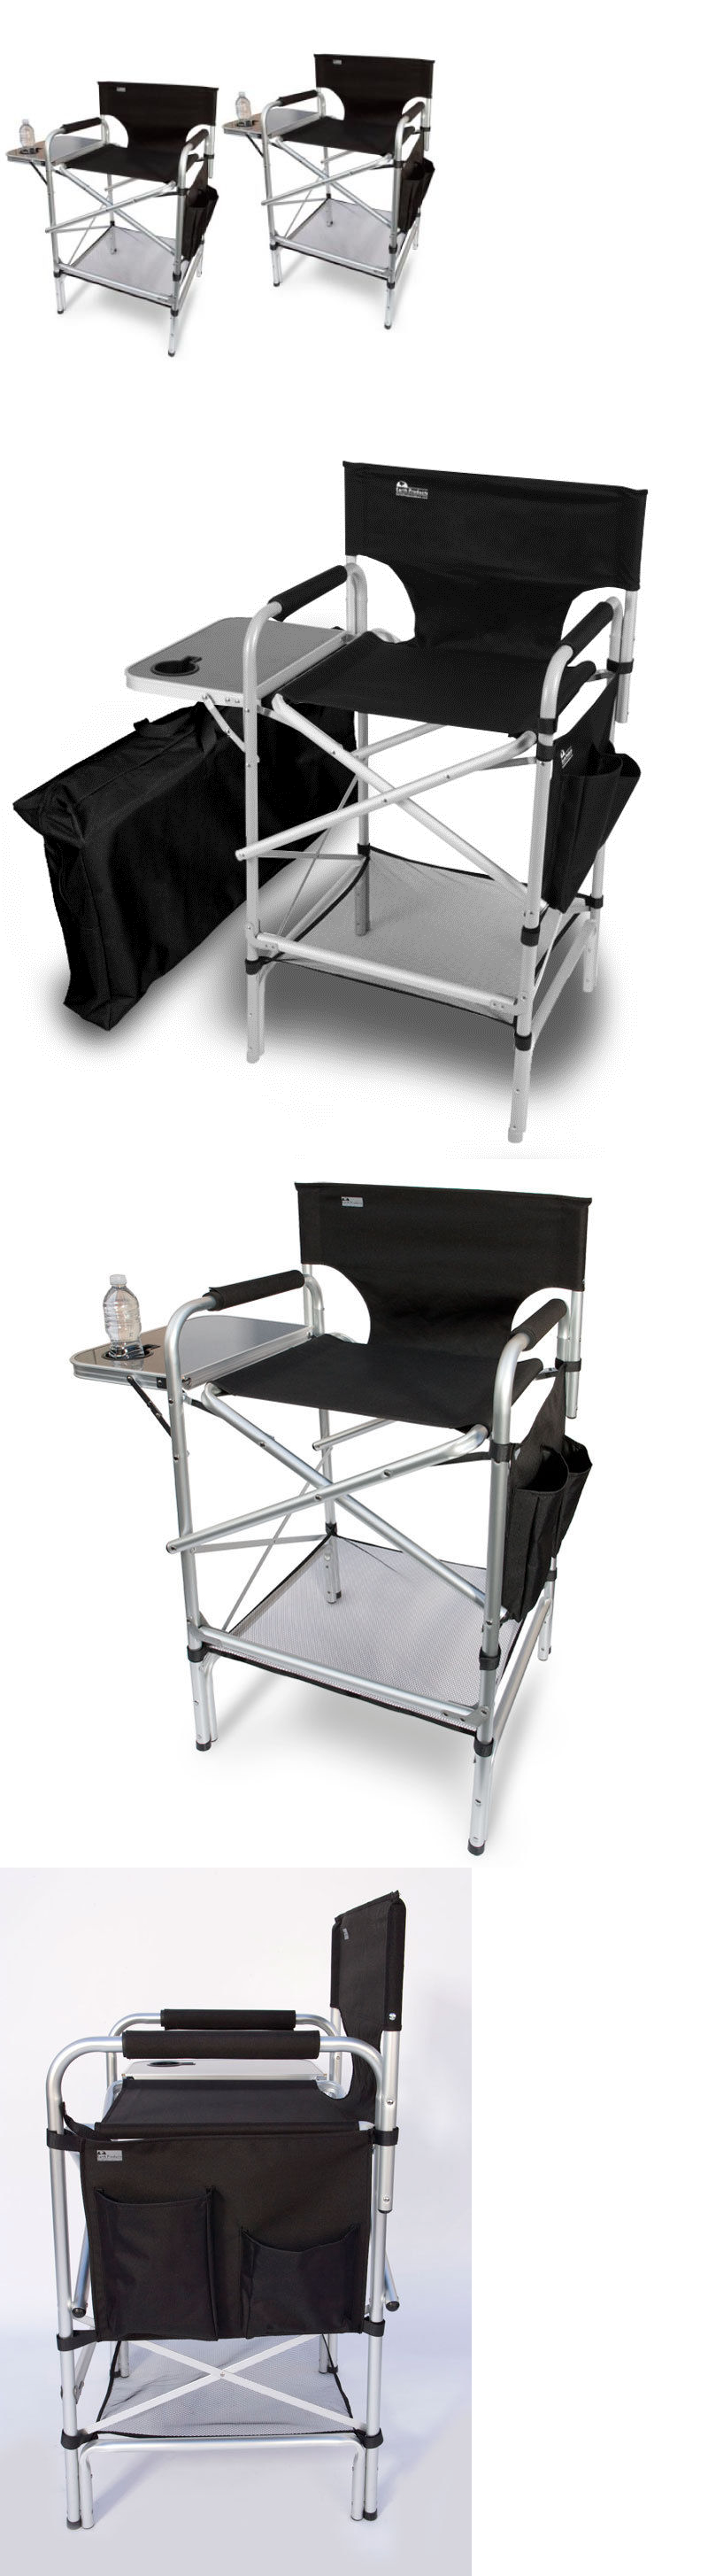 Camping Furniture Executive Vip Tall Directors Chair W Side